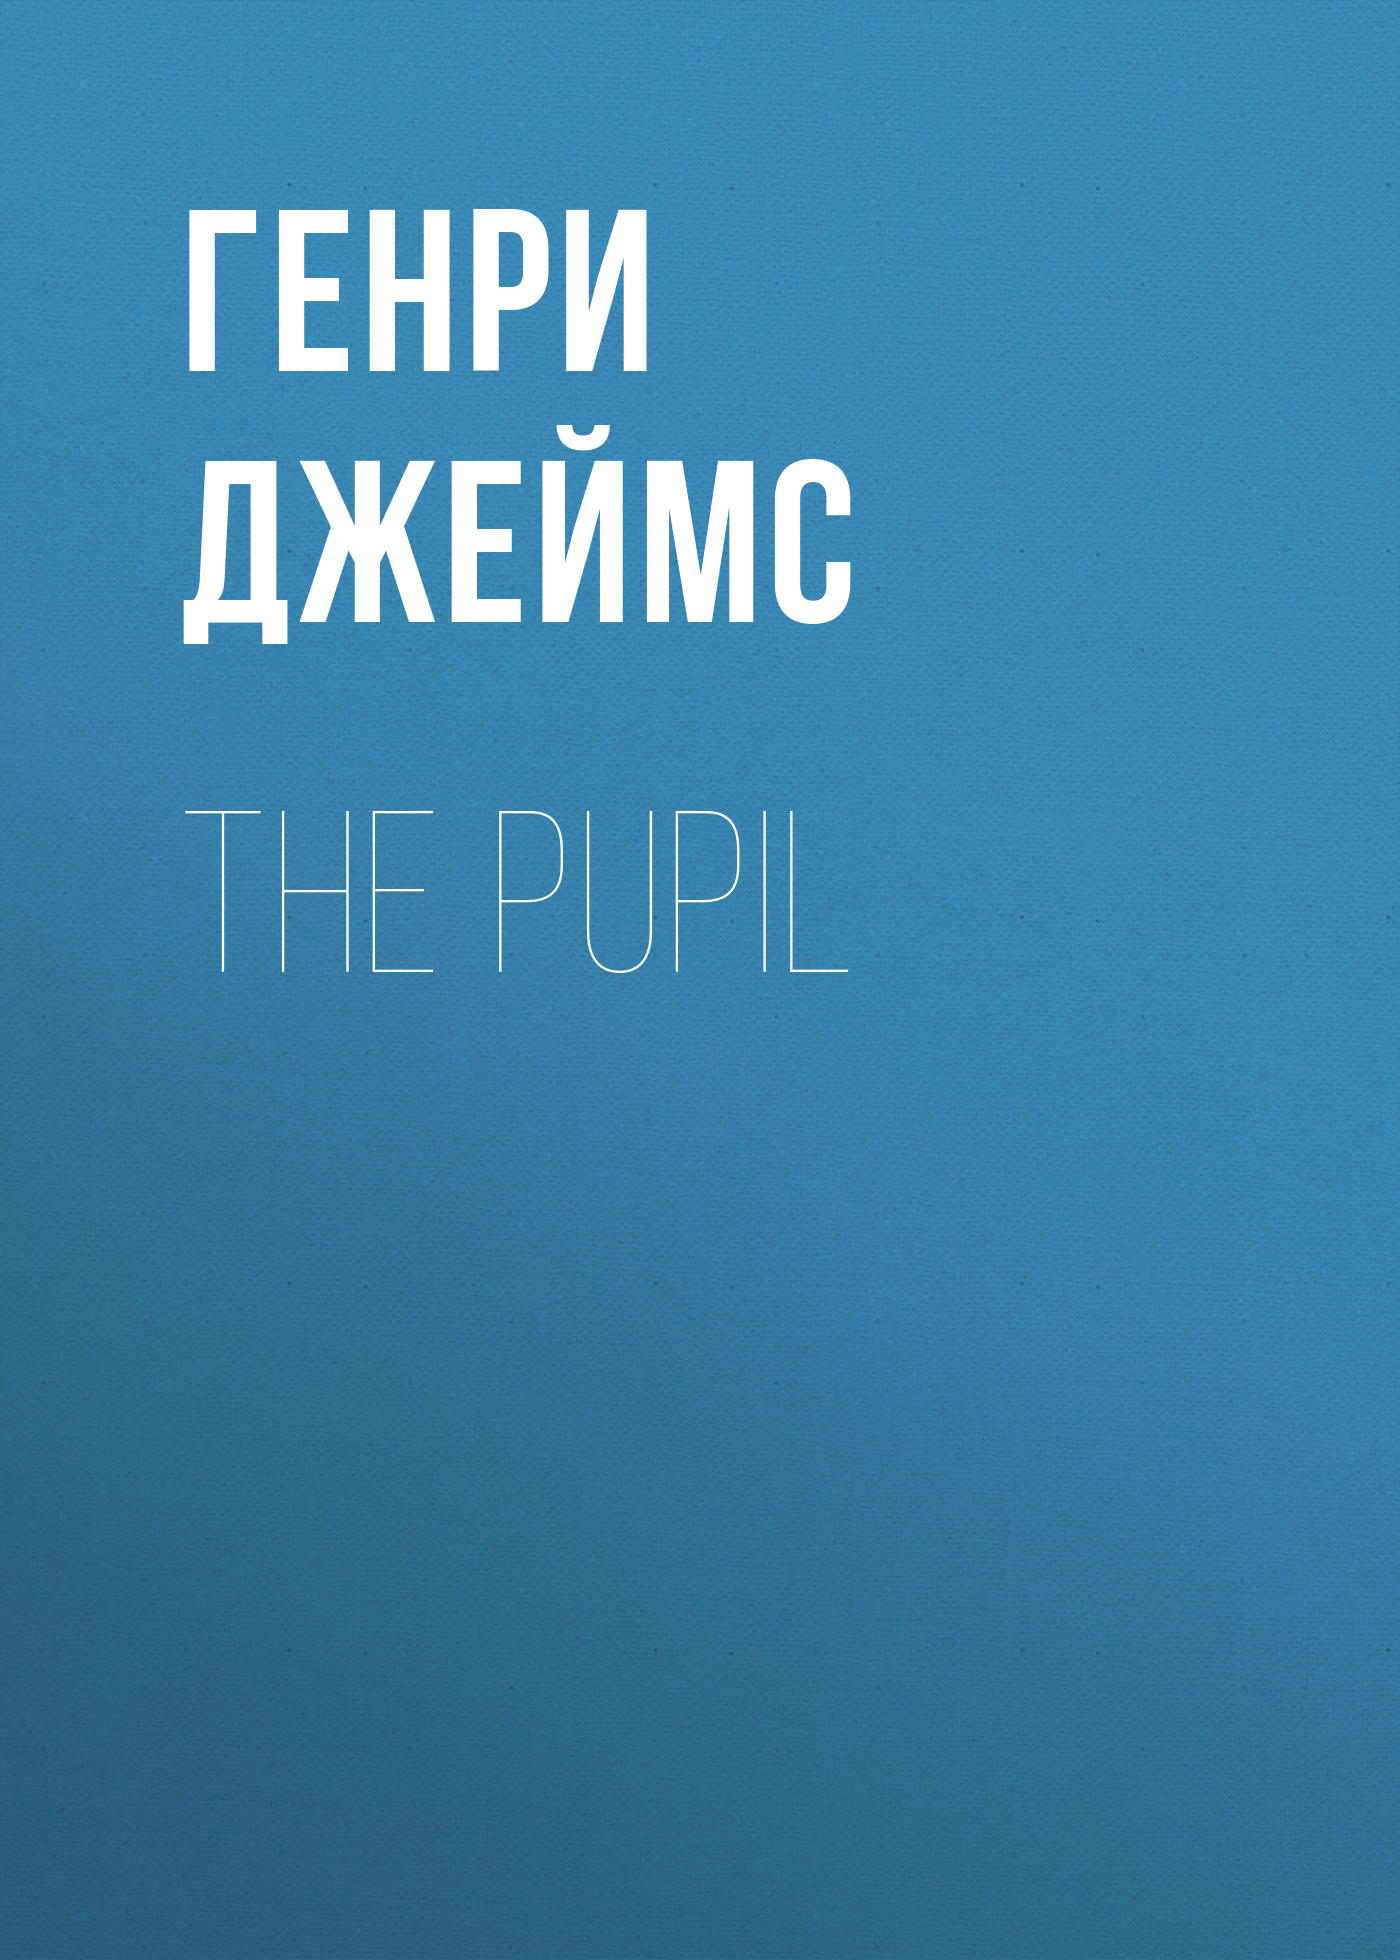 Генри Джеймс The Pupil генри джеймс the bostonians vol i